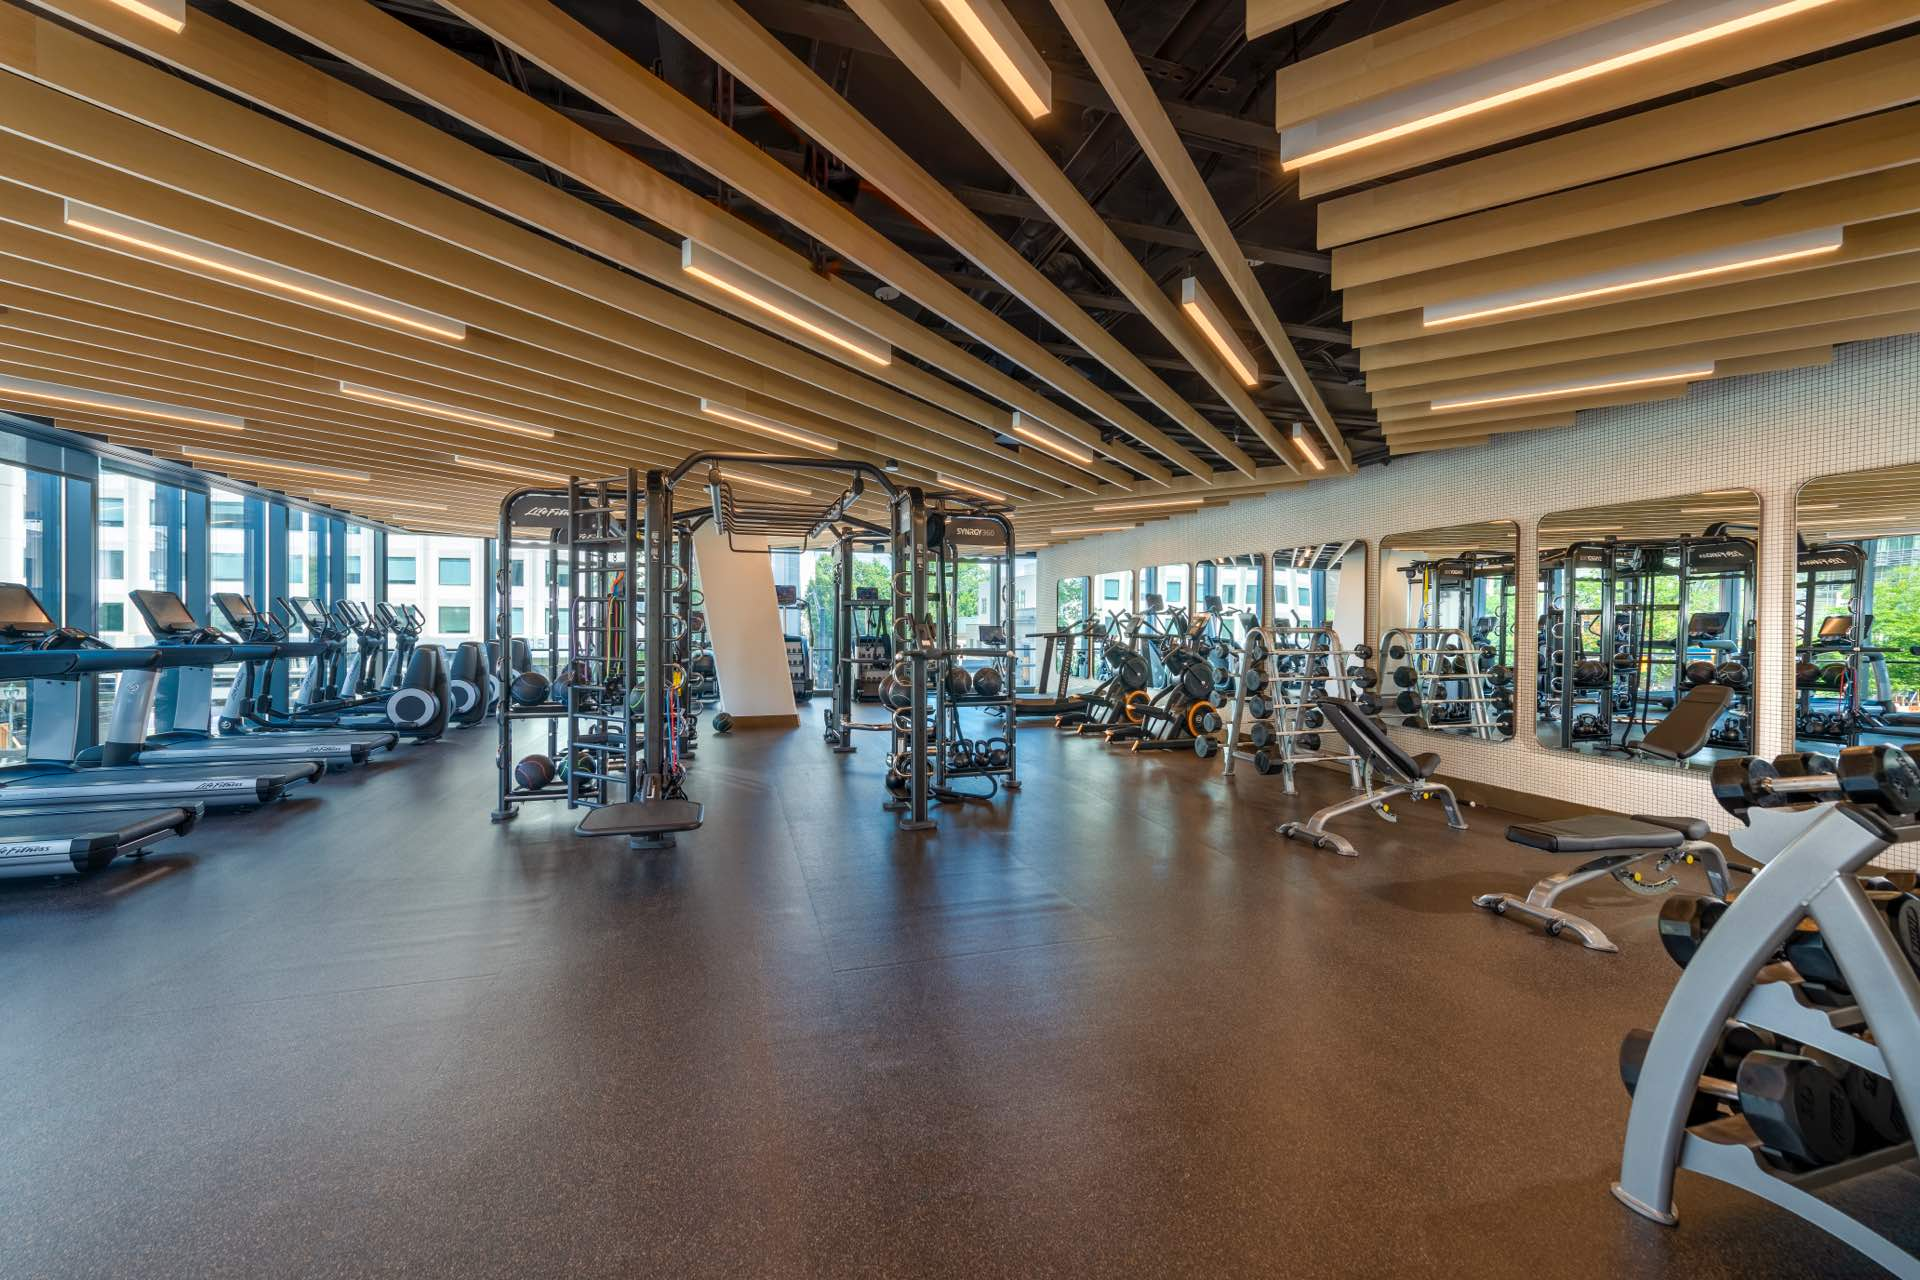 Ready to sweat? Find your flow in a dedicated, state-of-the-art fitness room.